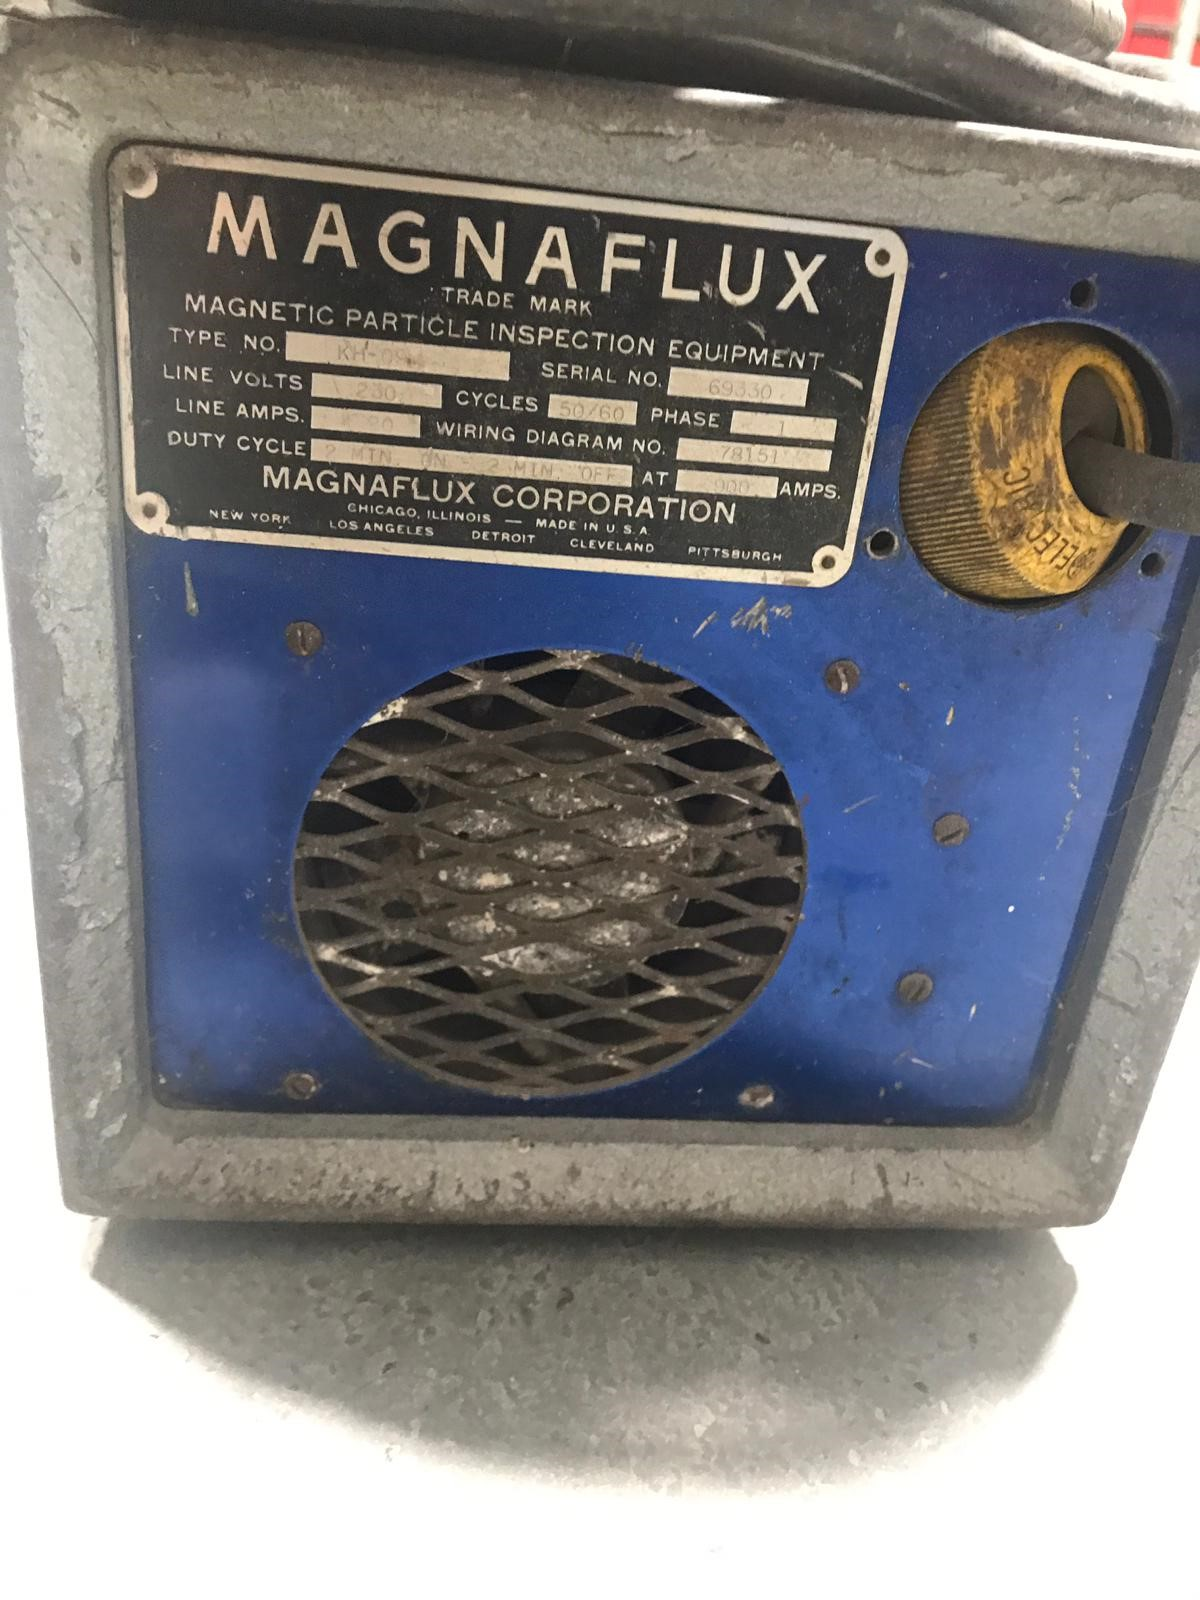 MAGNAFLUX Magnetic Particle inspection Equipment